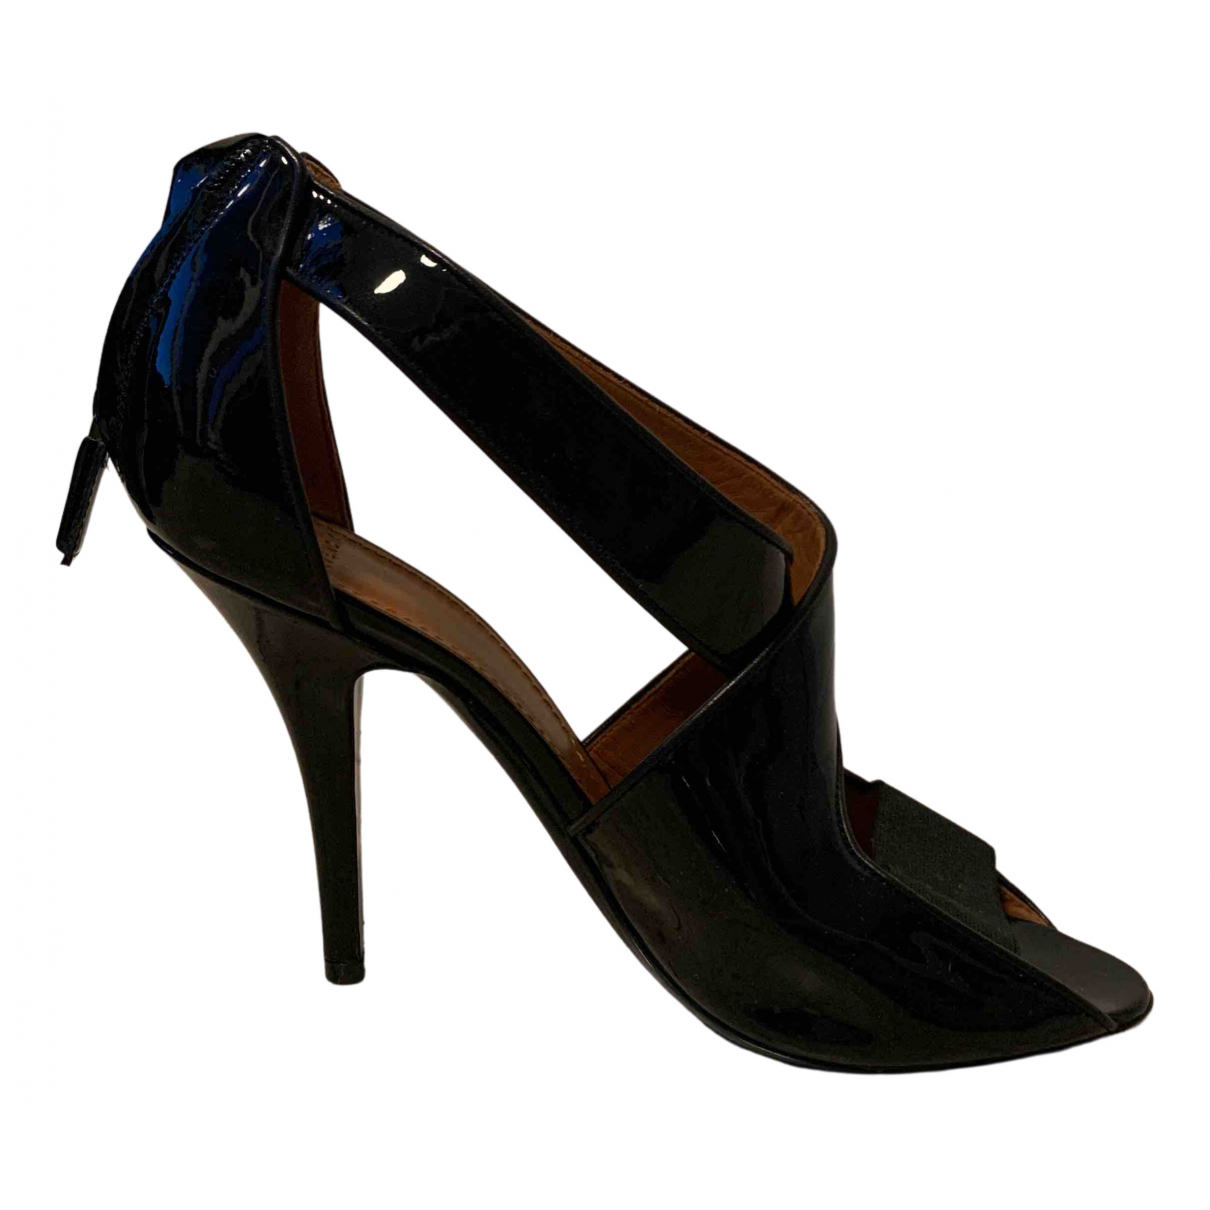 Givenchy \N Black Leather Heels for Women 38 EU